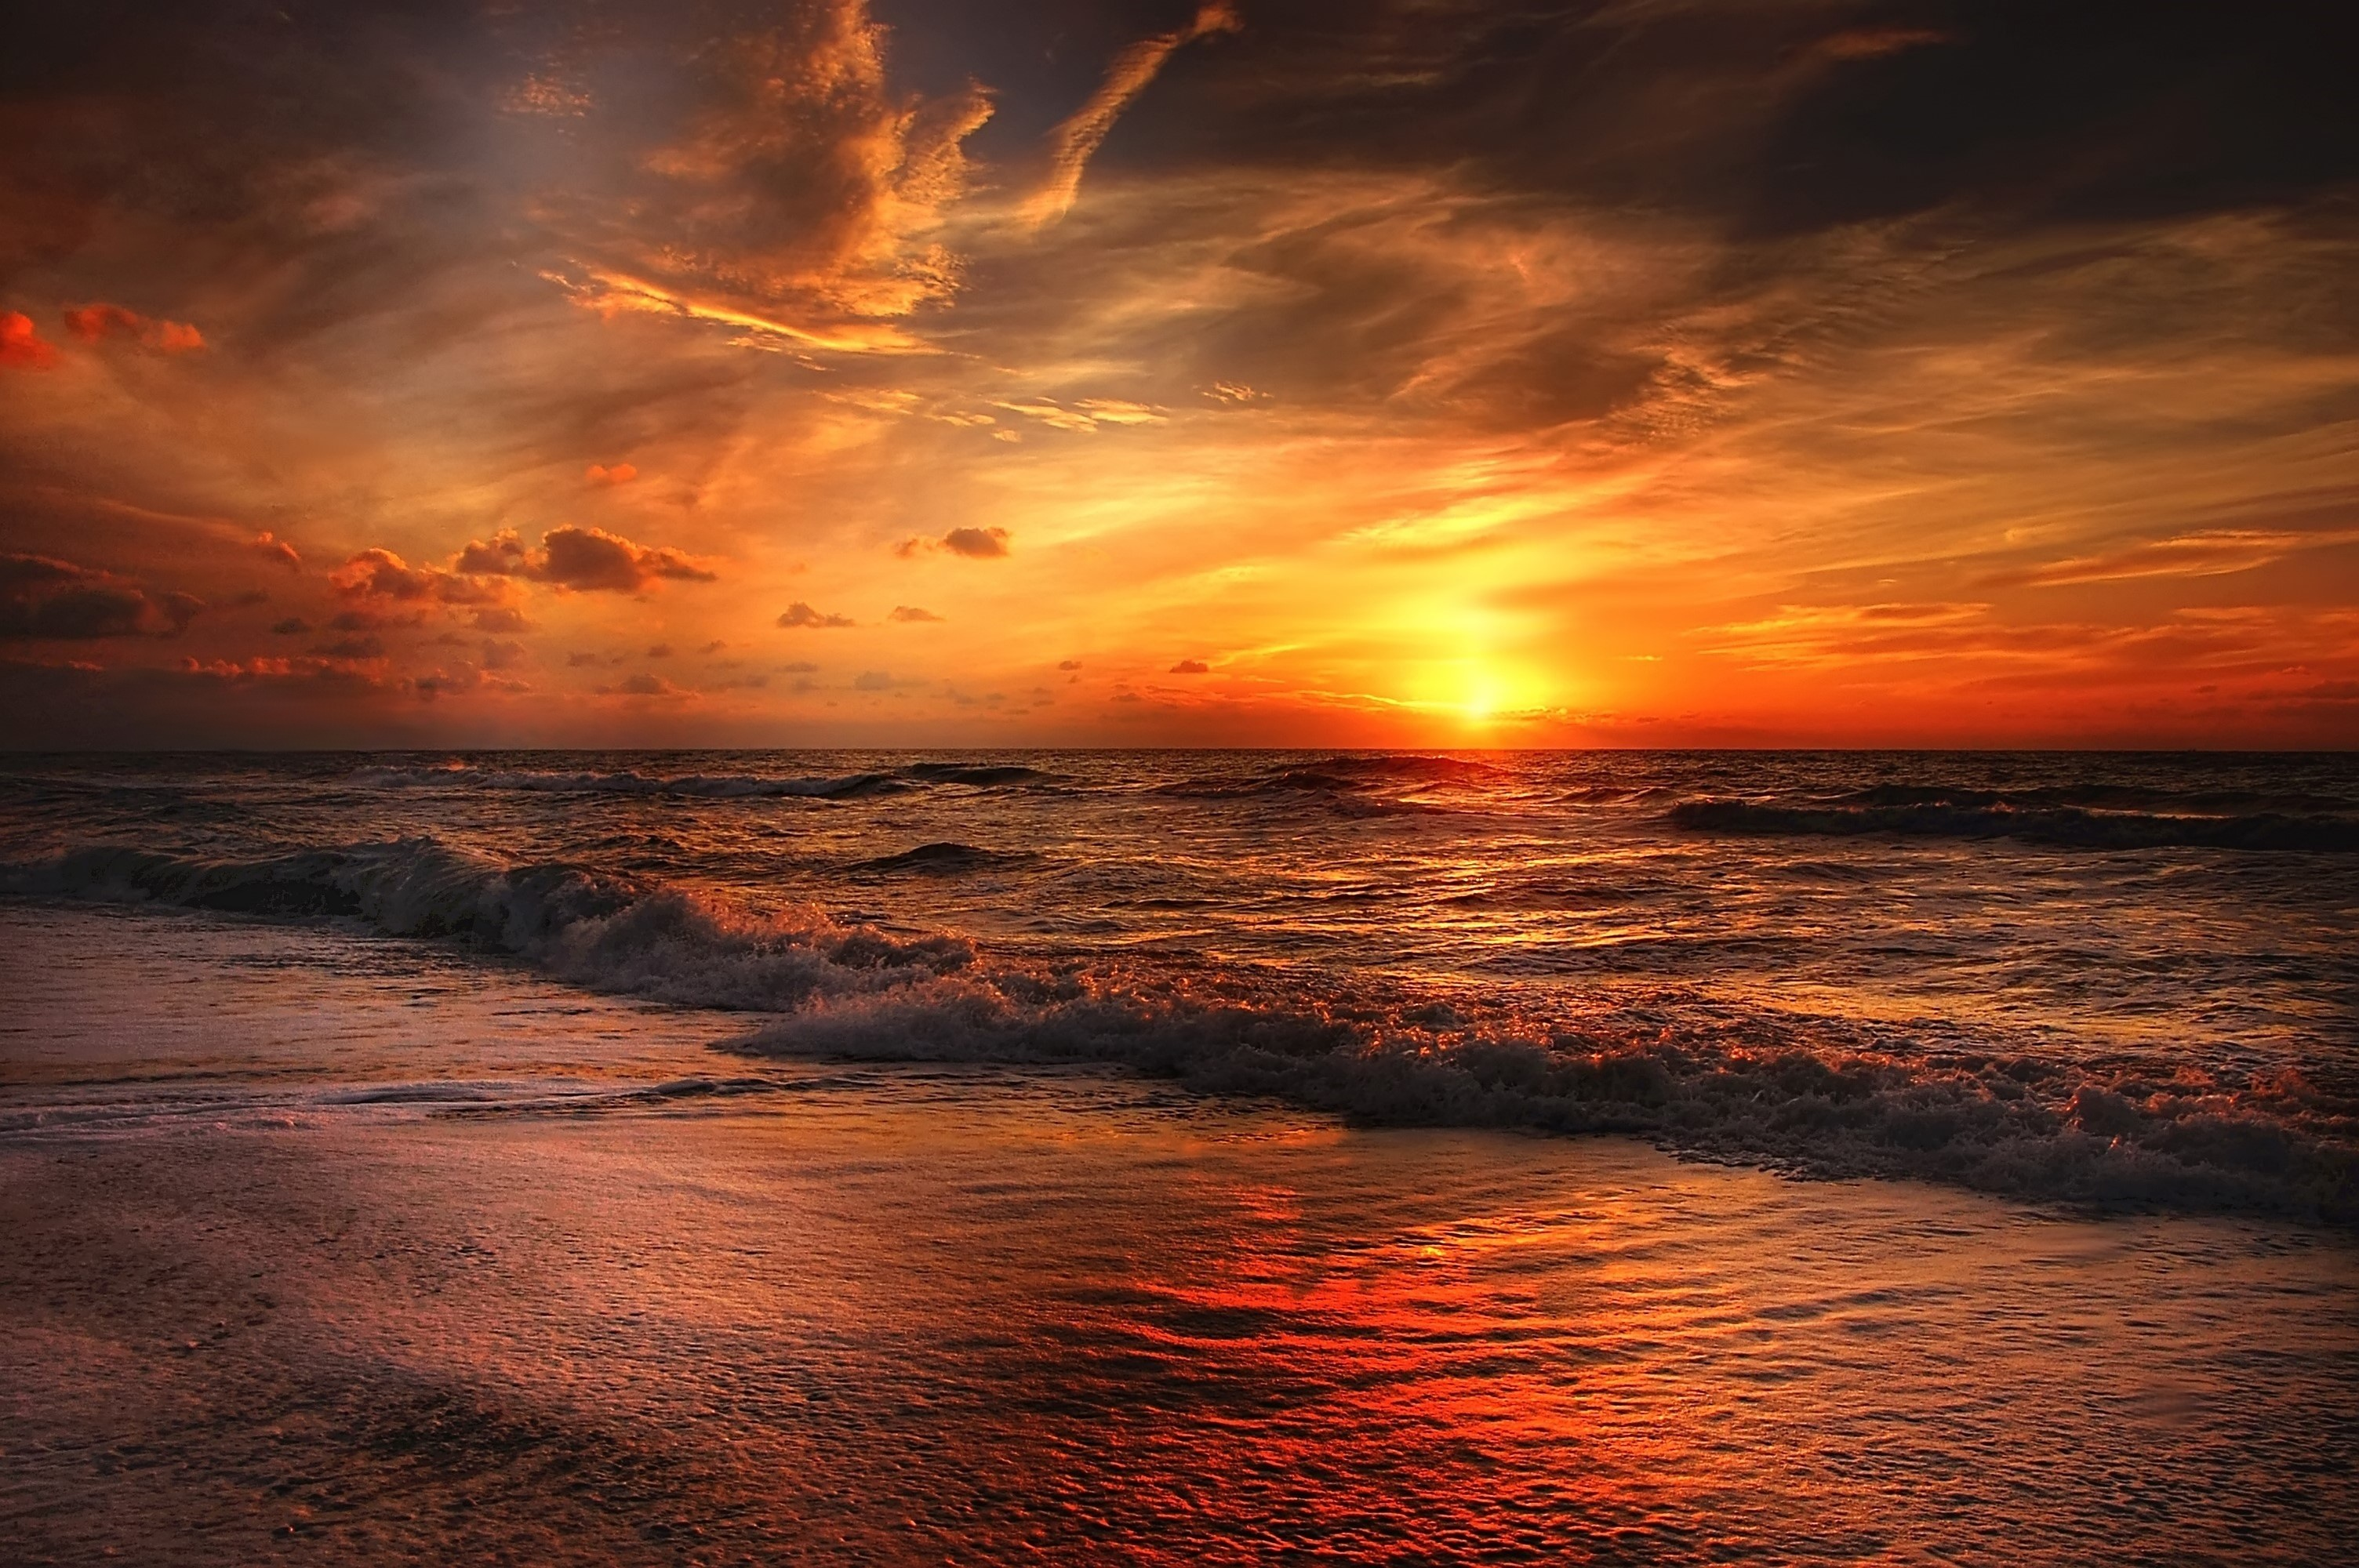 Sunset Beach Hd Nature 4k Wallpapers Images Backgrounds